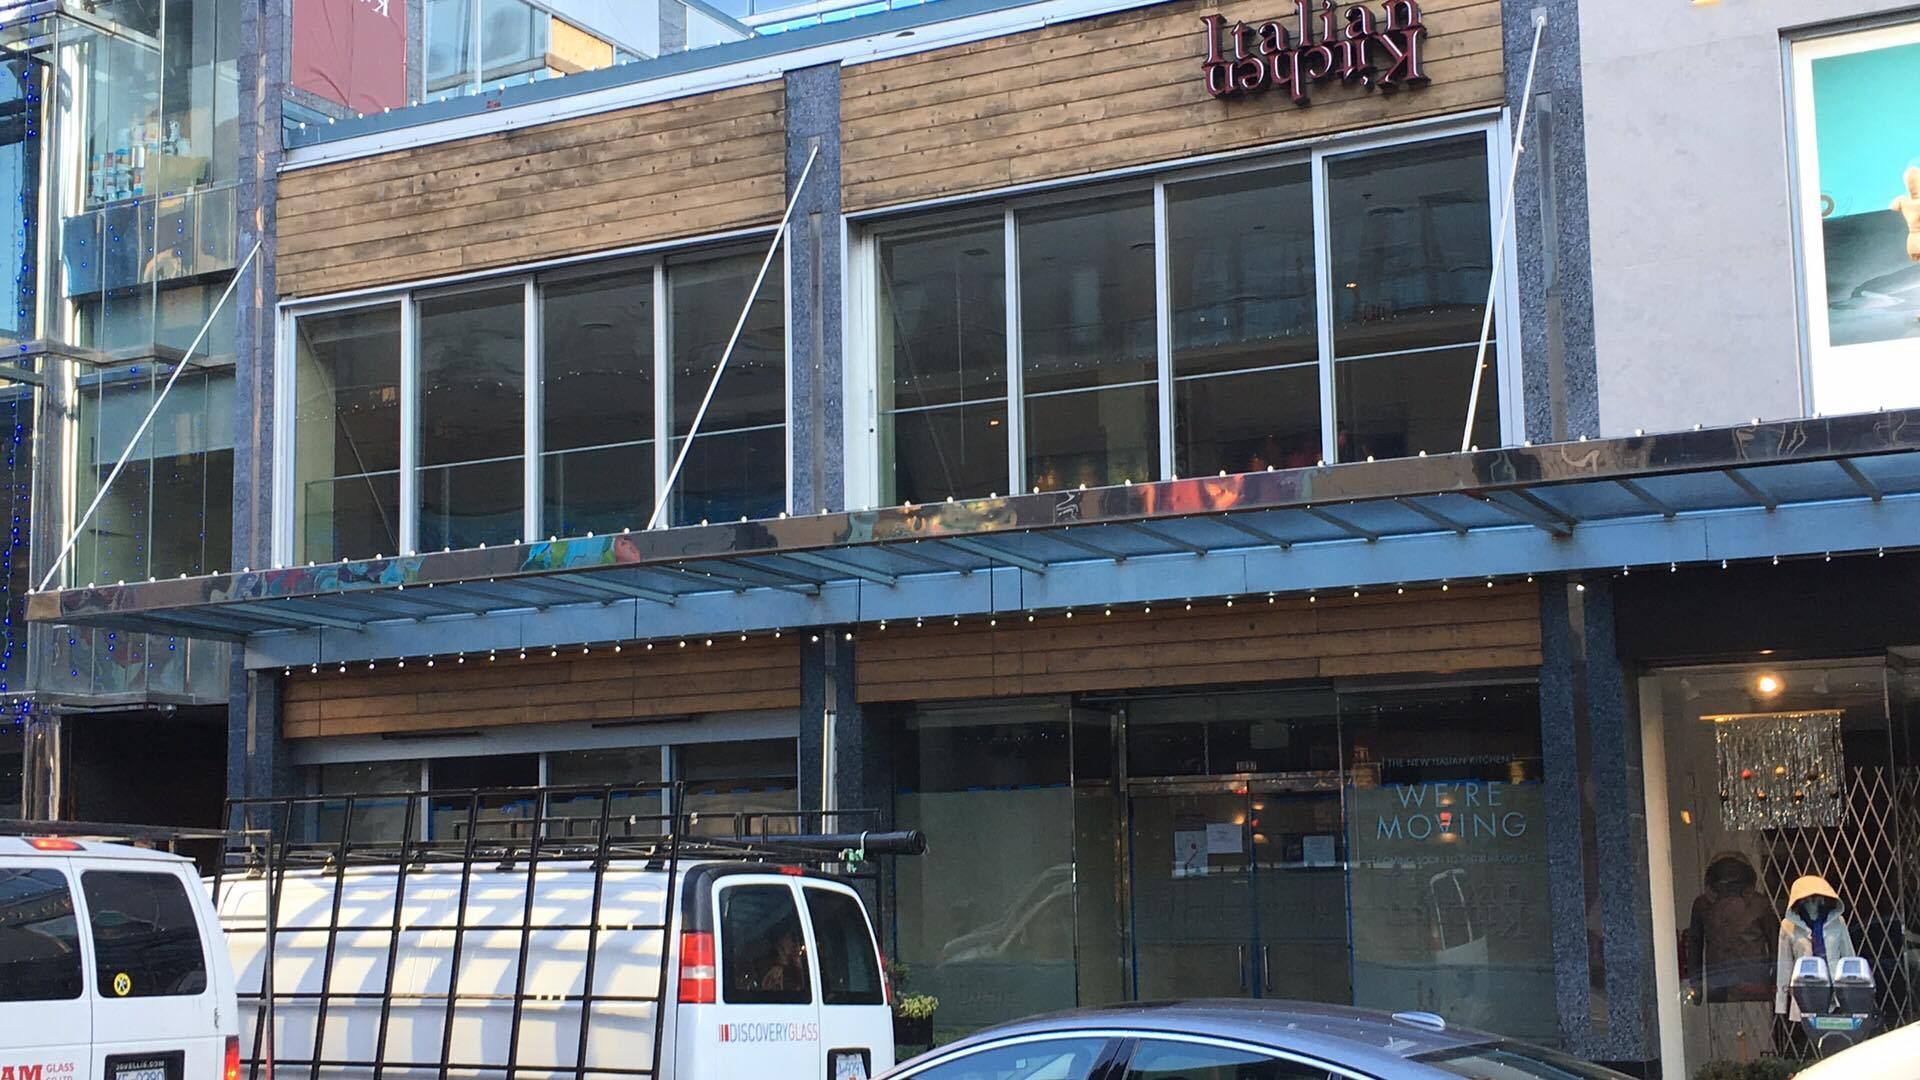 (Restaurant 'Italian Kitchen' recently relocated off Alberni Street to a space on Burrard Street. Upscale multi-brand jeweller Montecristo will replace it in 2018. Photo: Lee Rivett)